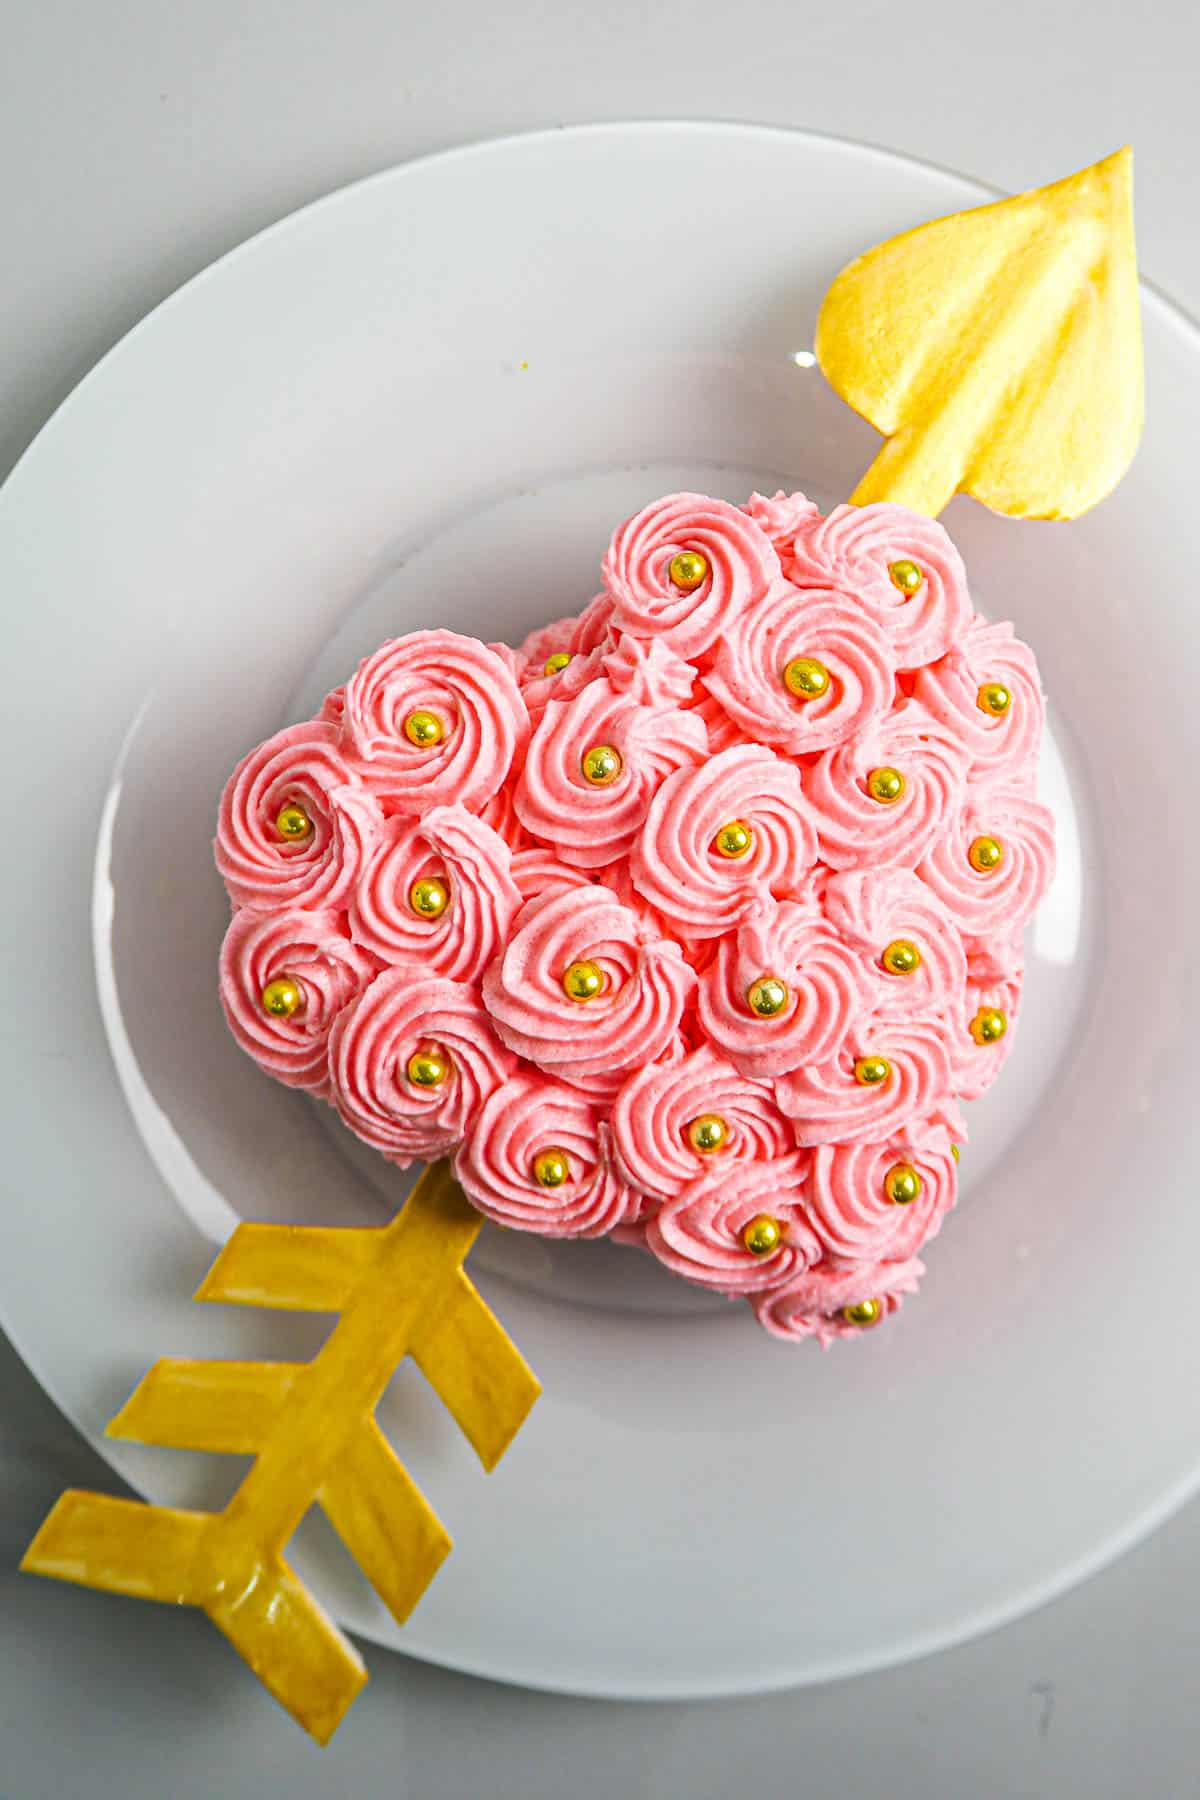 A heart shaped cake decorated with pink buttercream rossettes and a gum paste arrow going through it